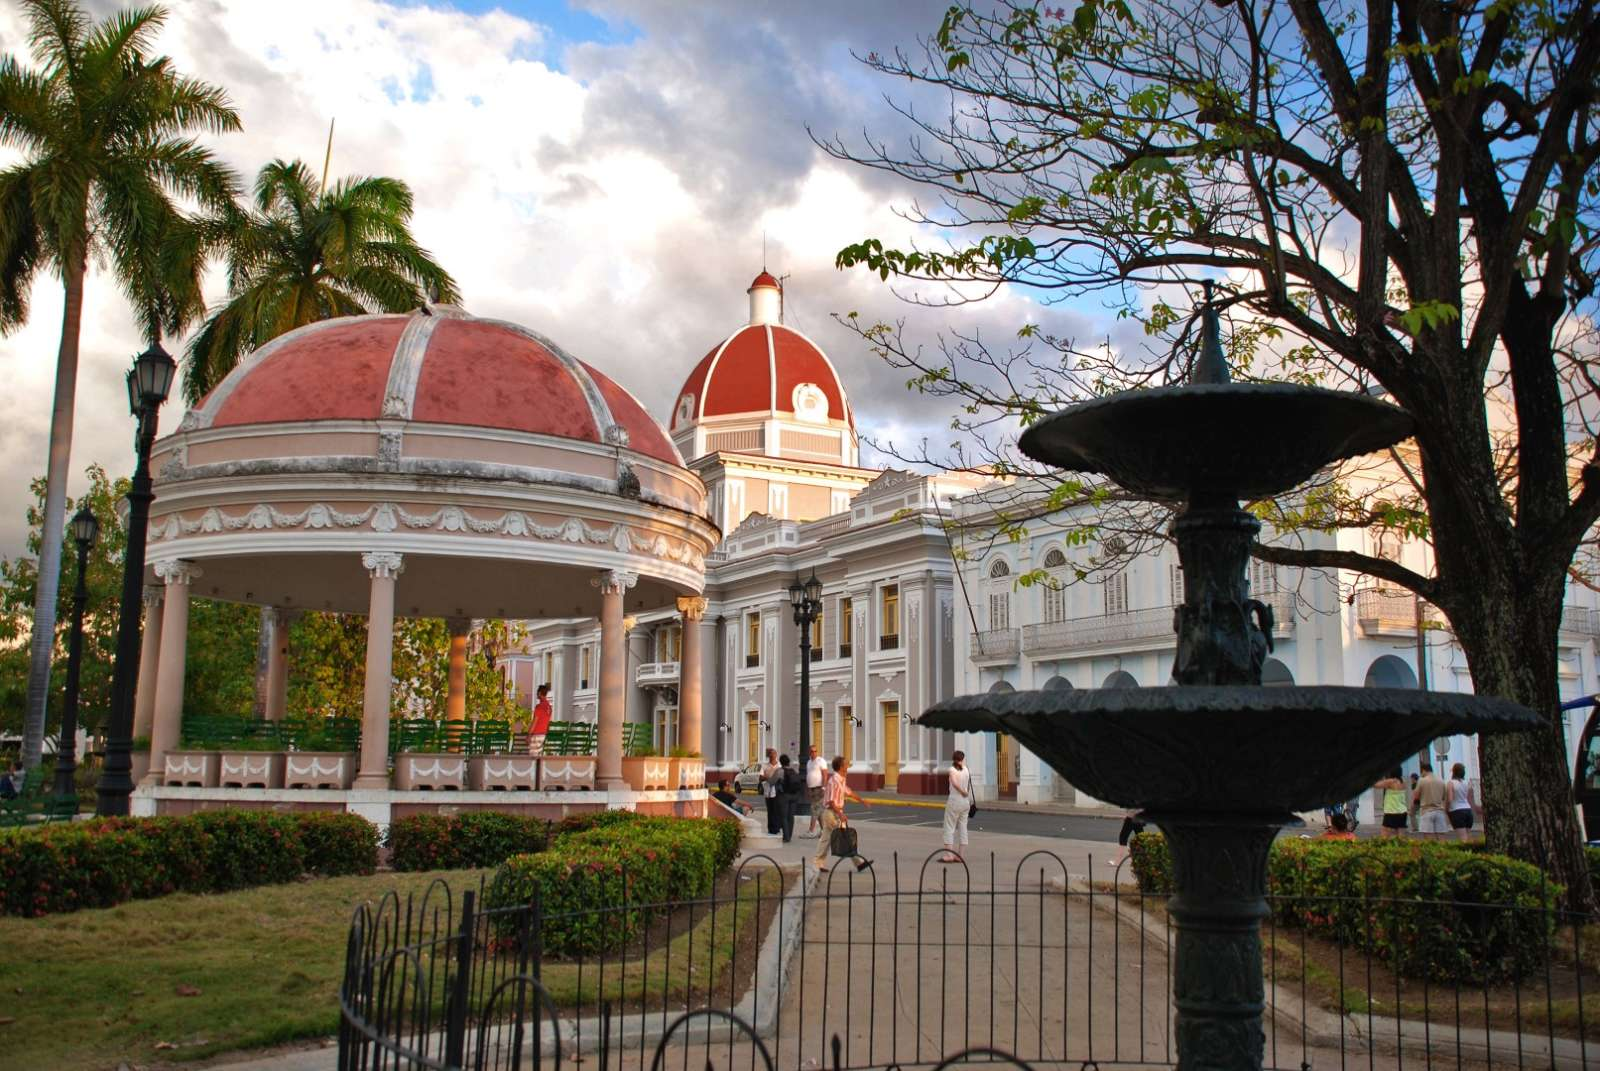 Bandstand at Parque Central, Cienfuegos